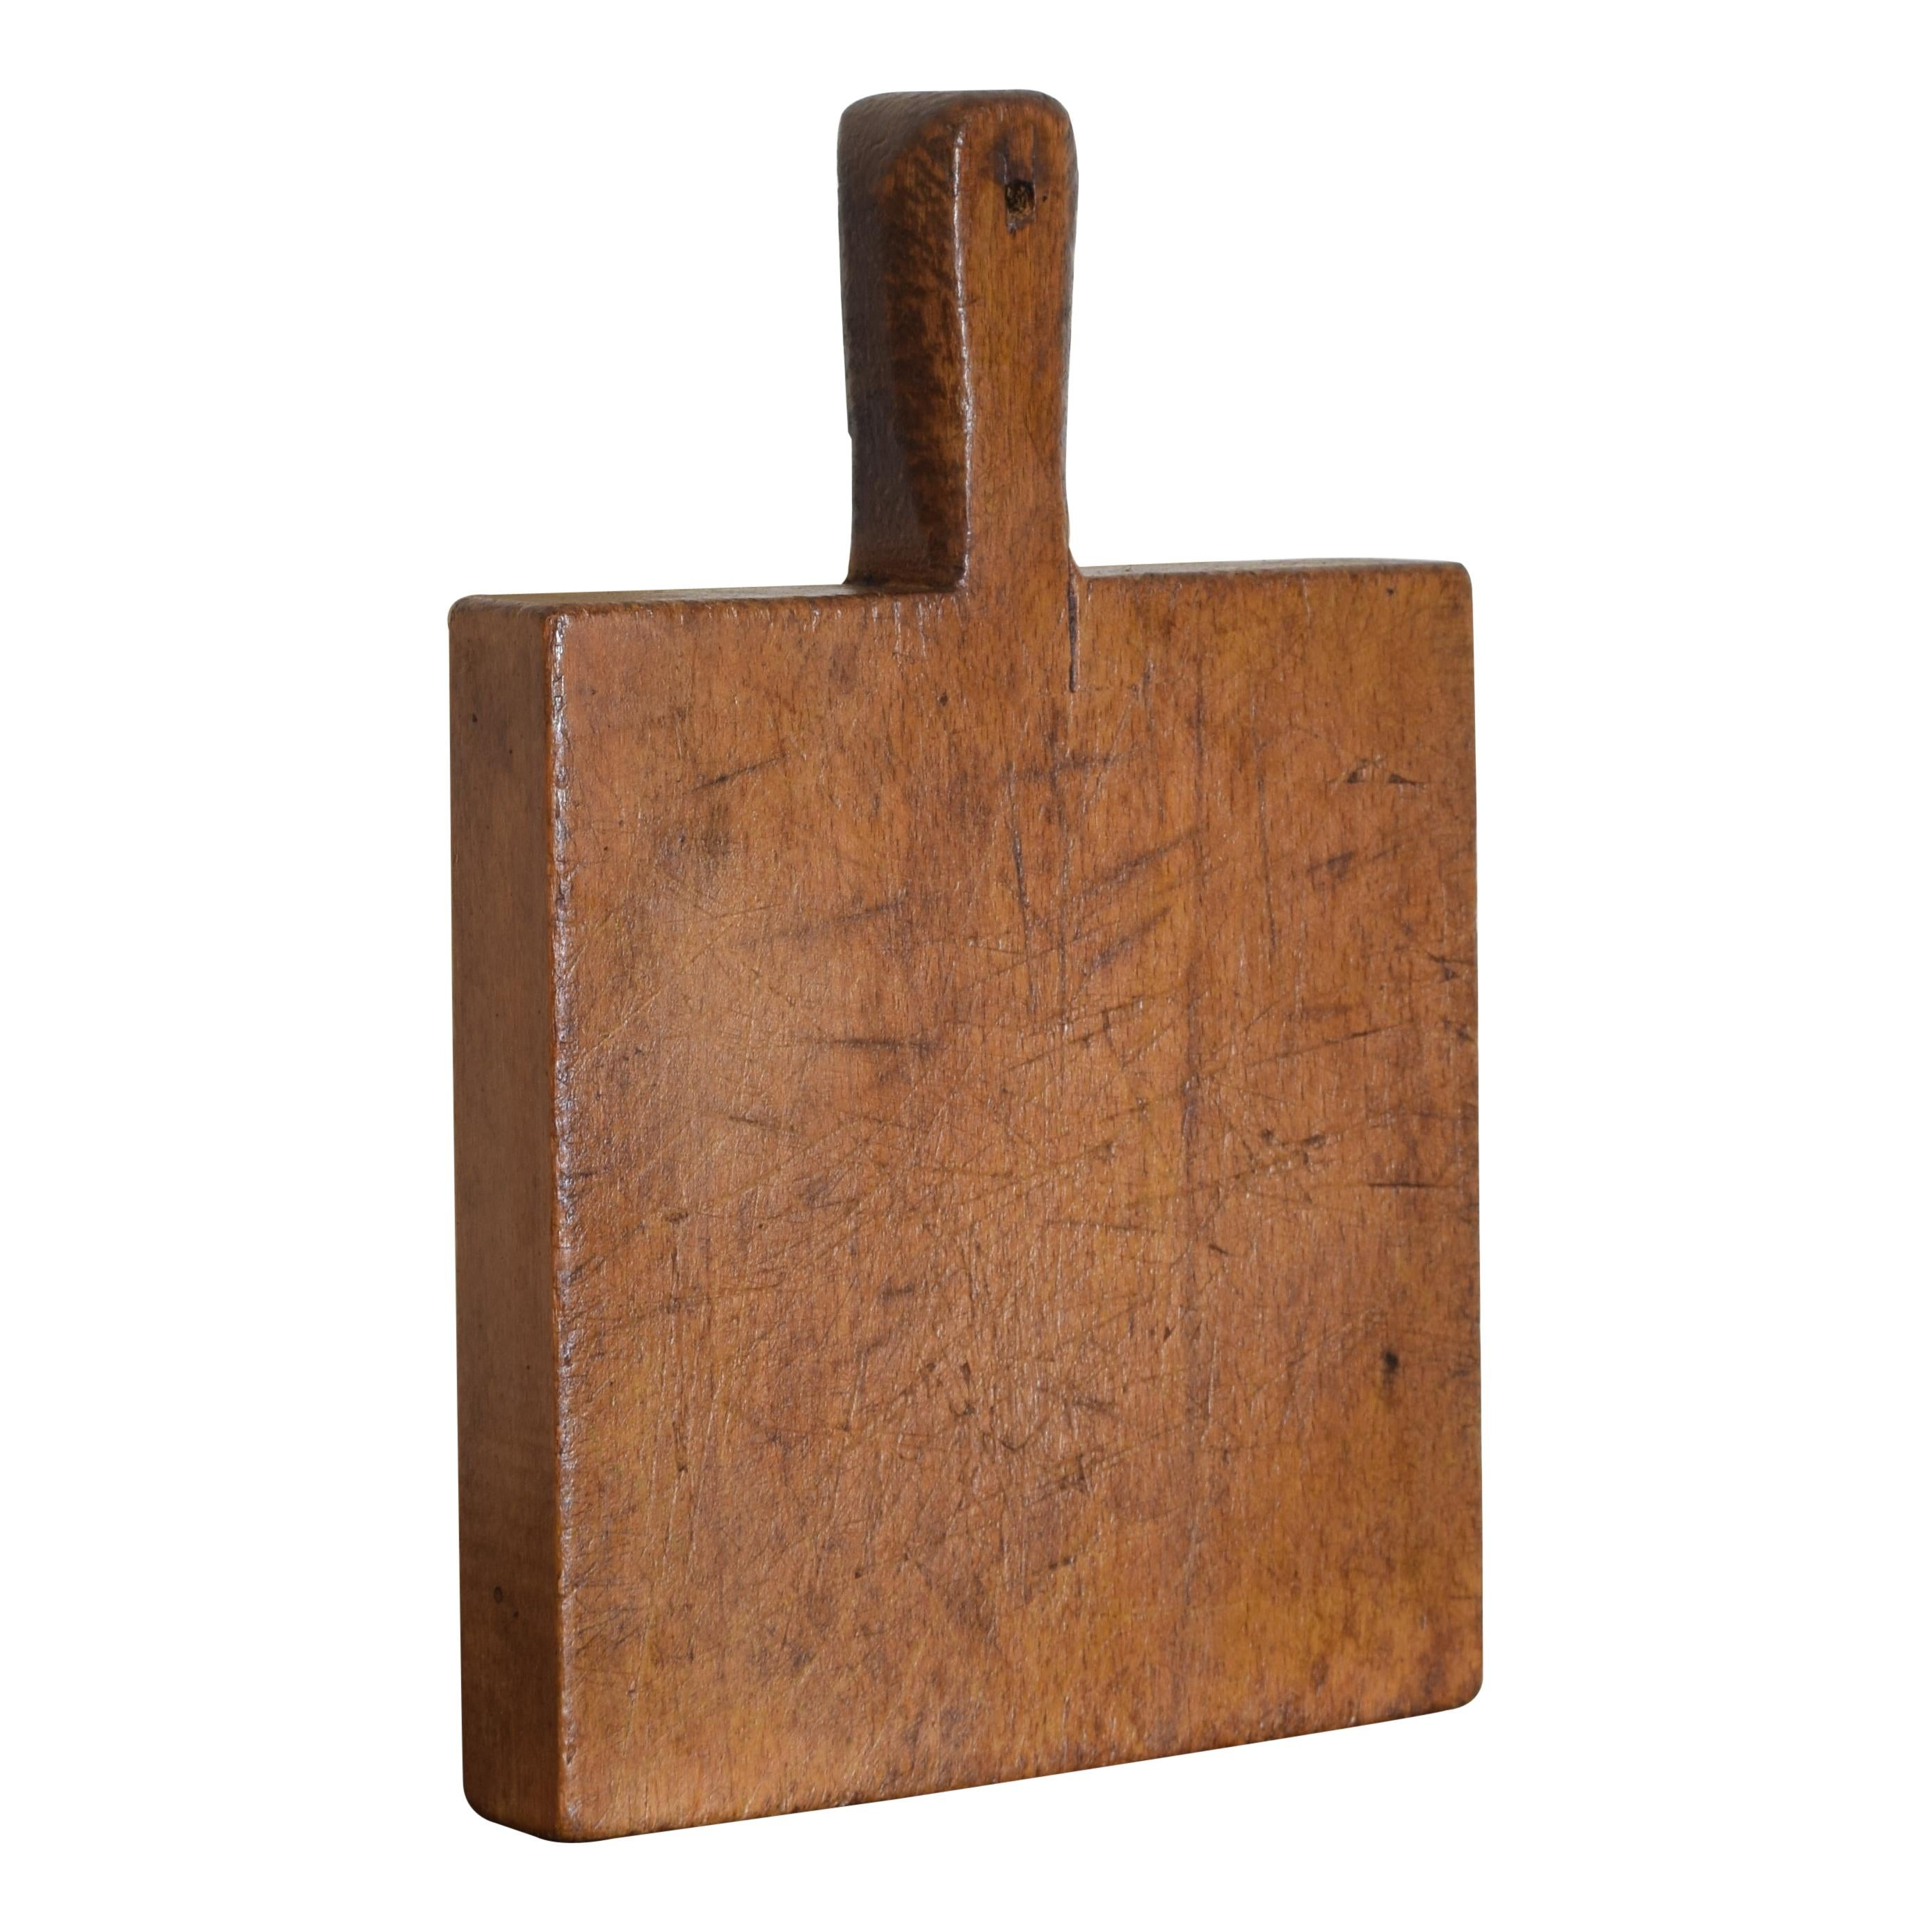 Small French Handled Cutting Board in Pinewood, Early 20th Century